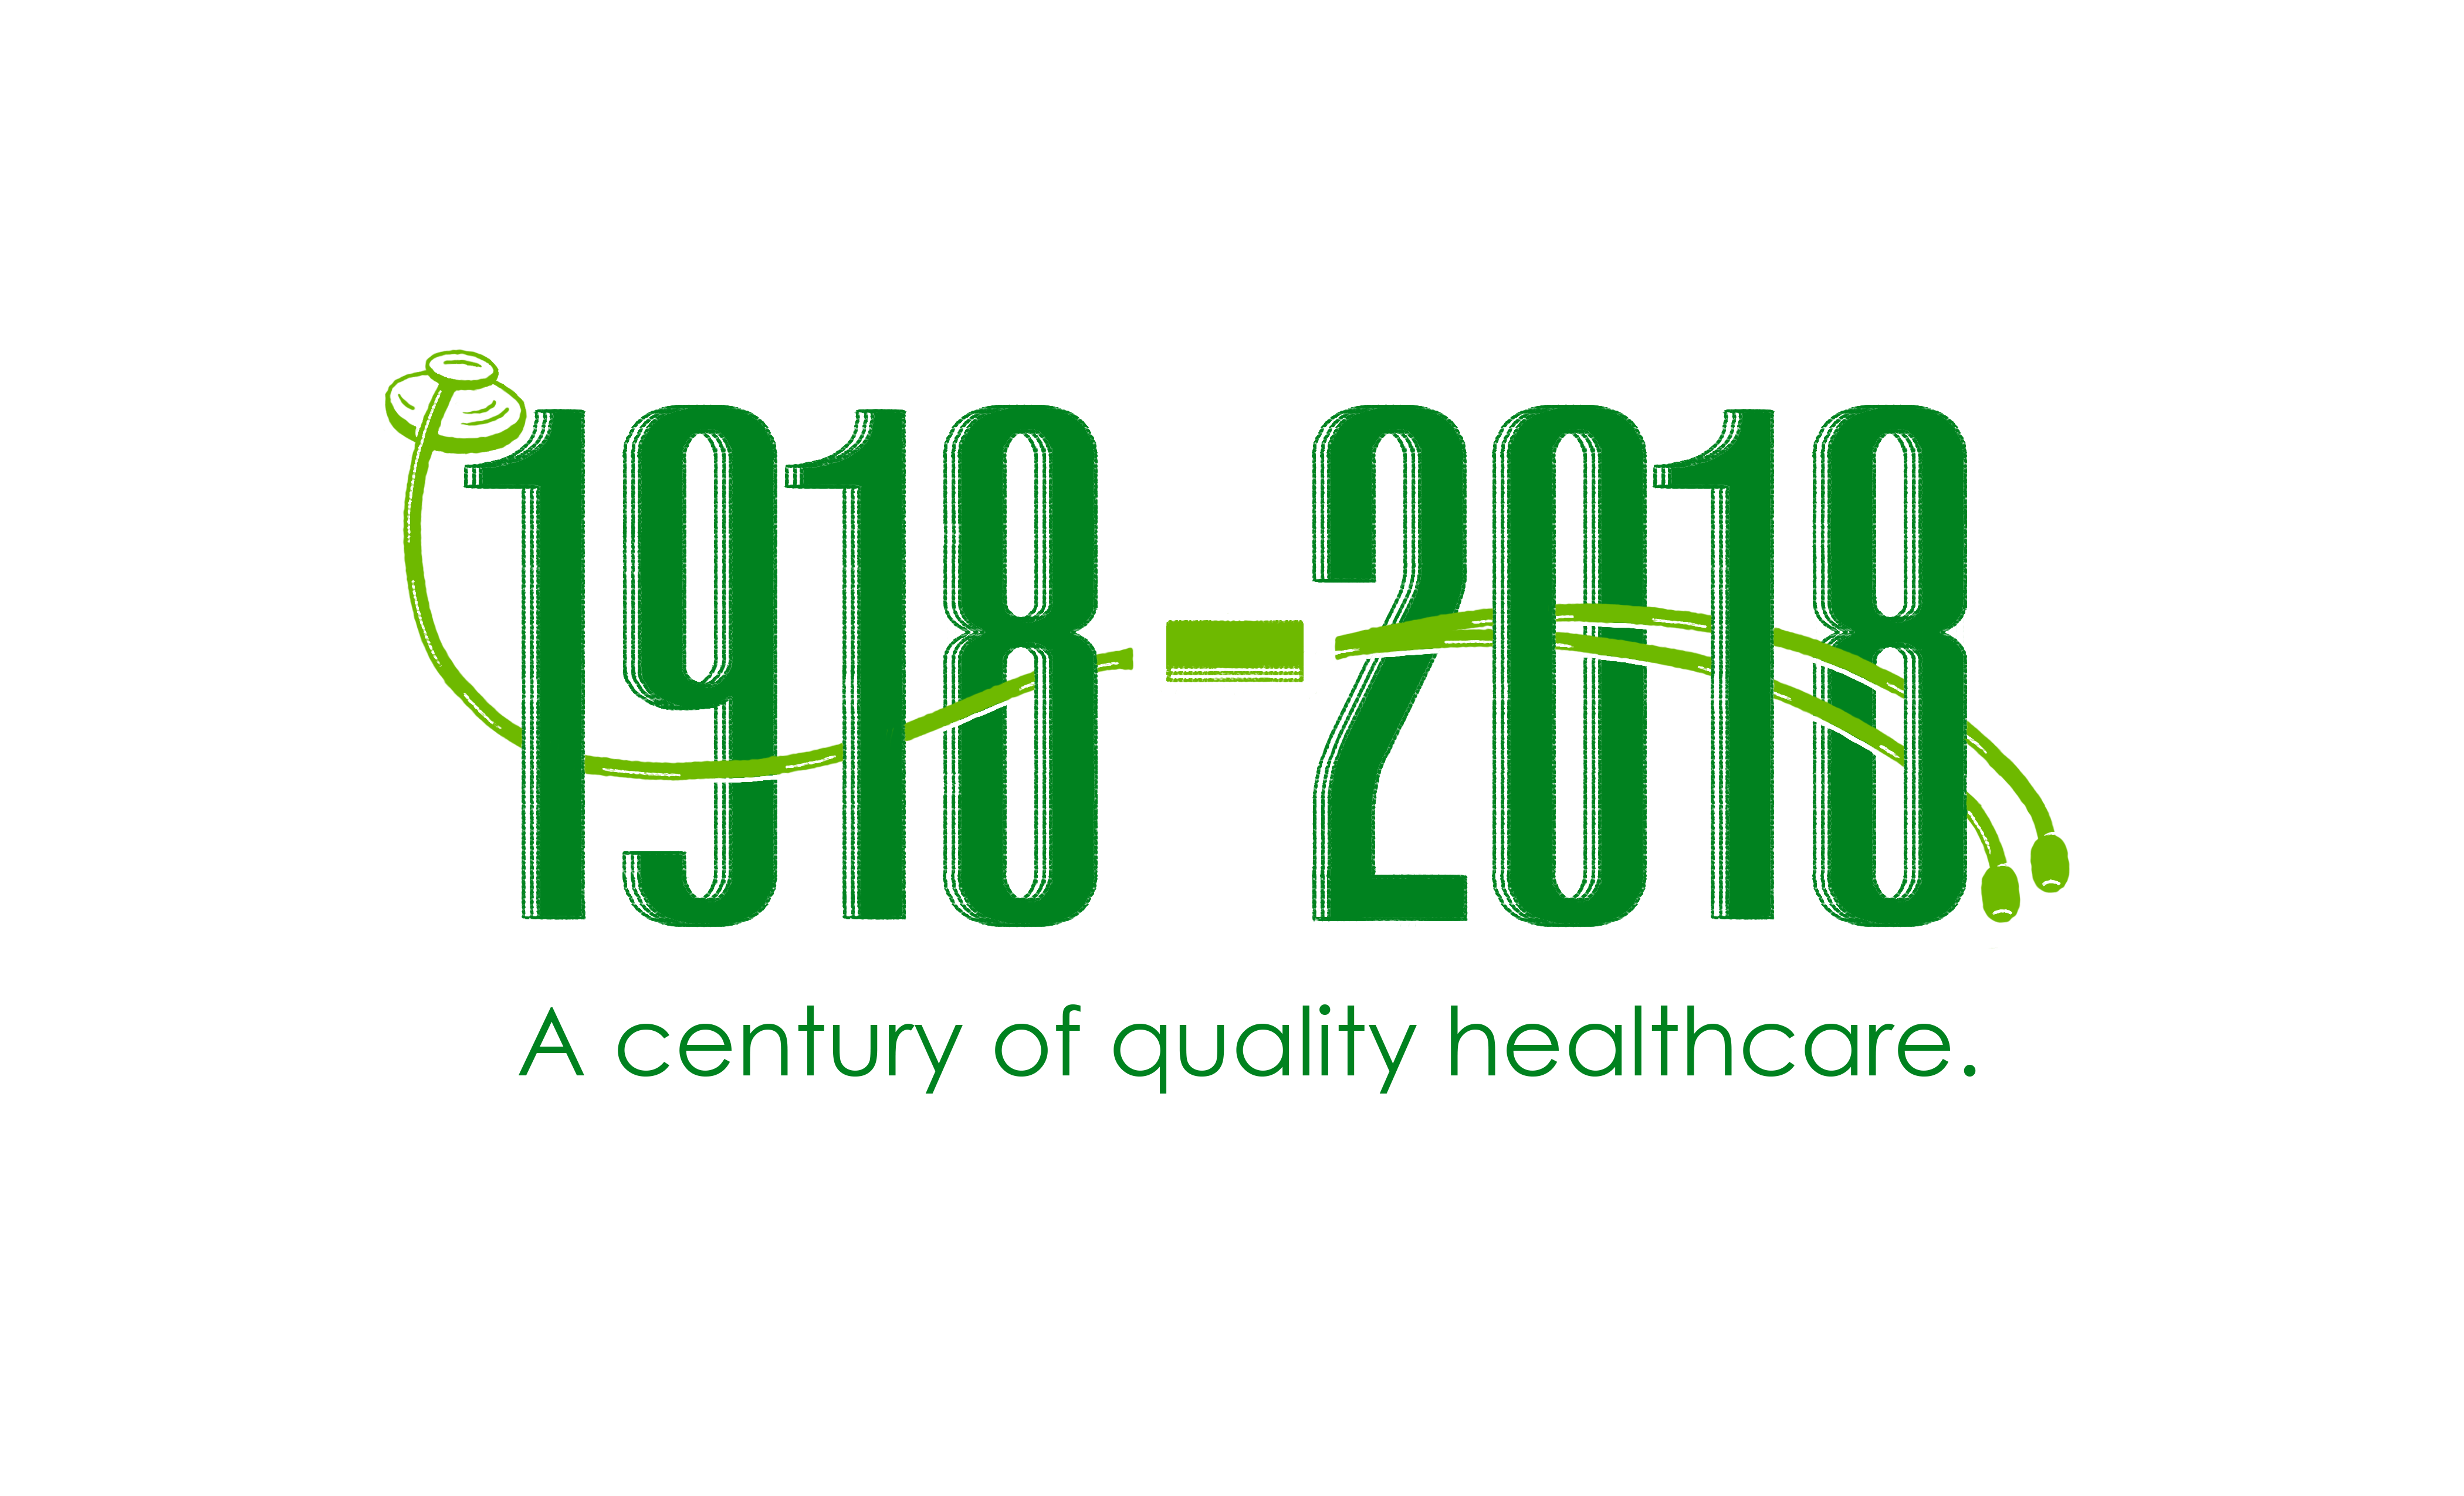 1918-2018 A Century of Quality Healthcare